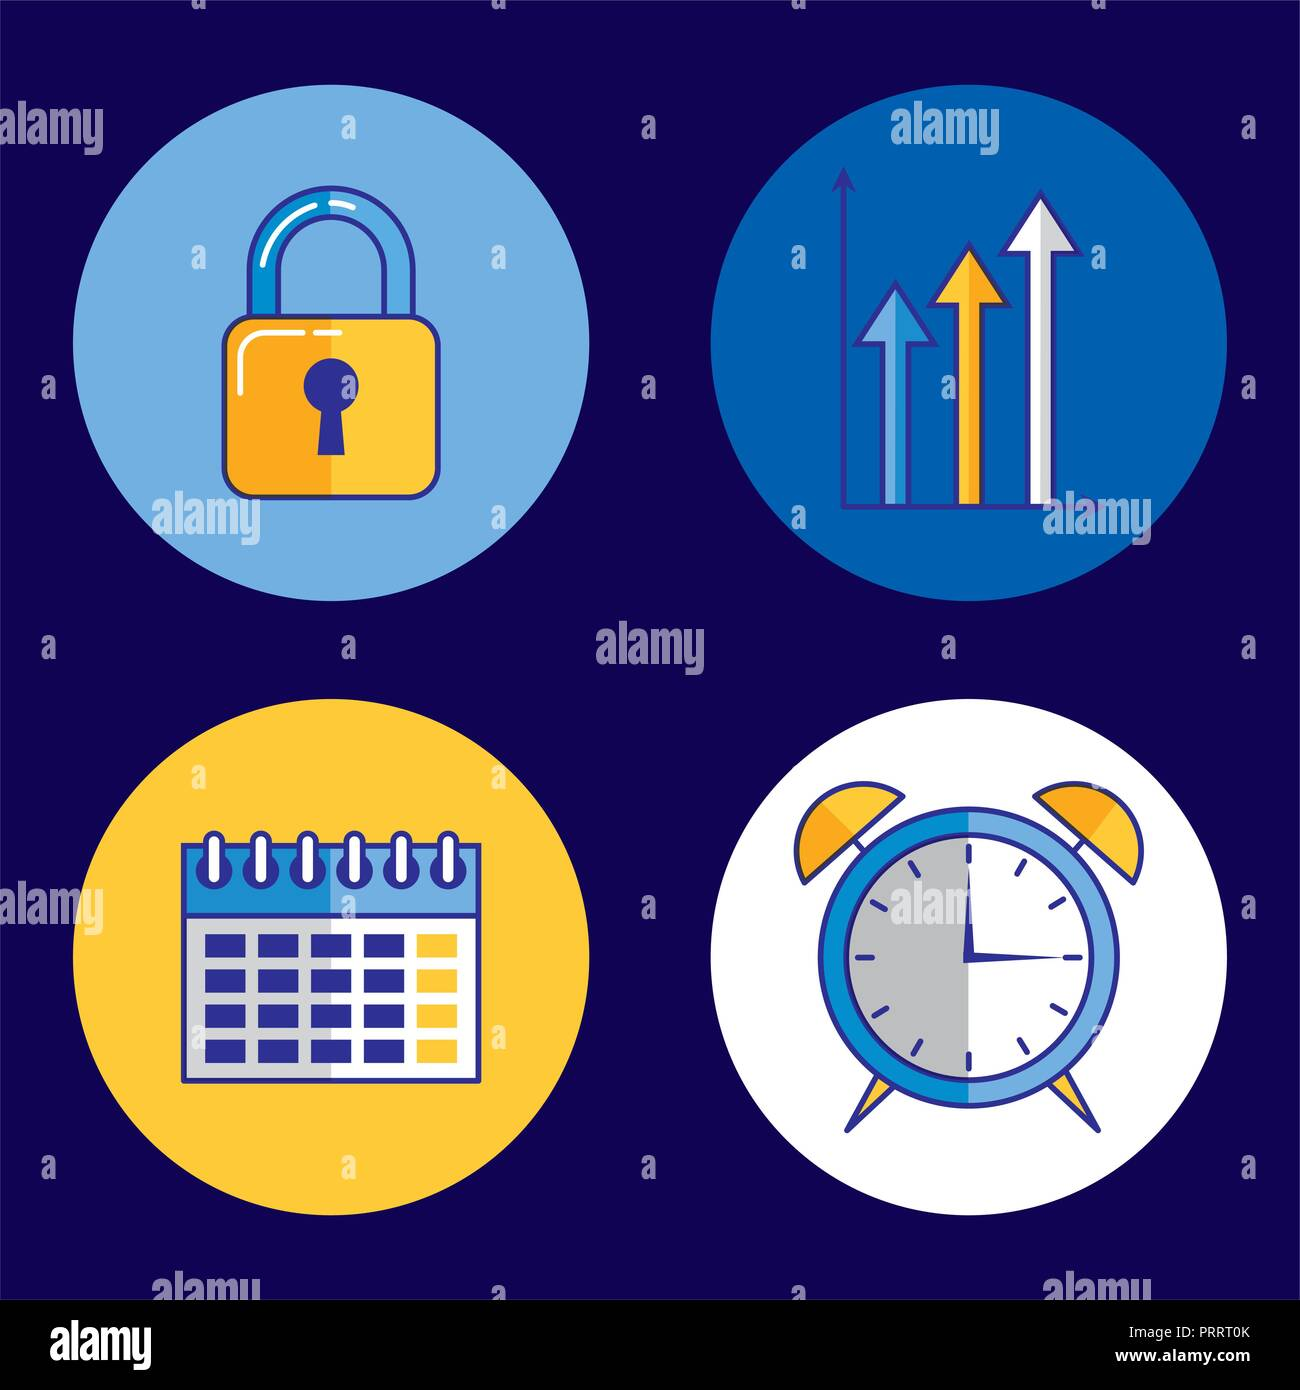 Finance Related Business High Resolution Stock Photography And Images Alamy